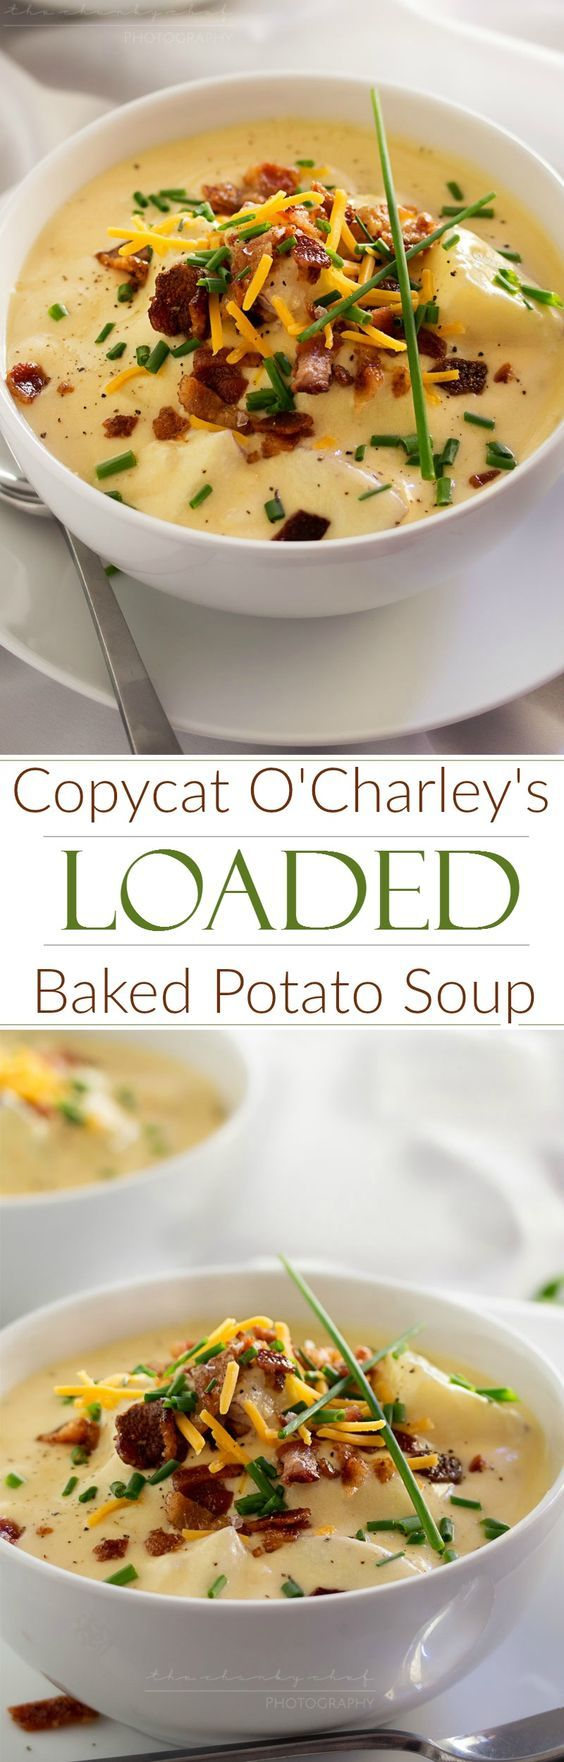 Copycat Loaded Baked Potato Soup | Recipe